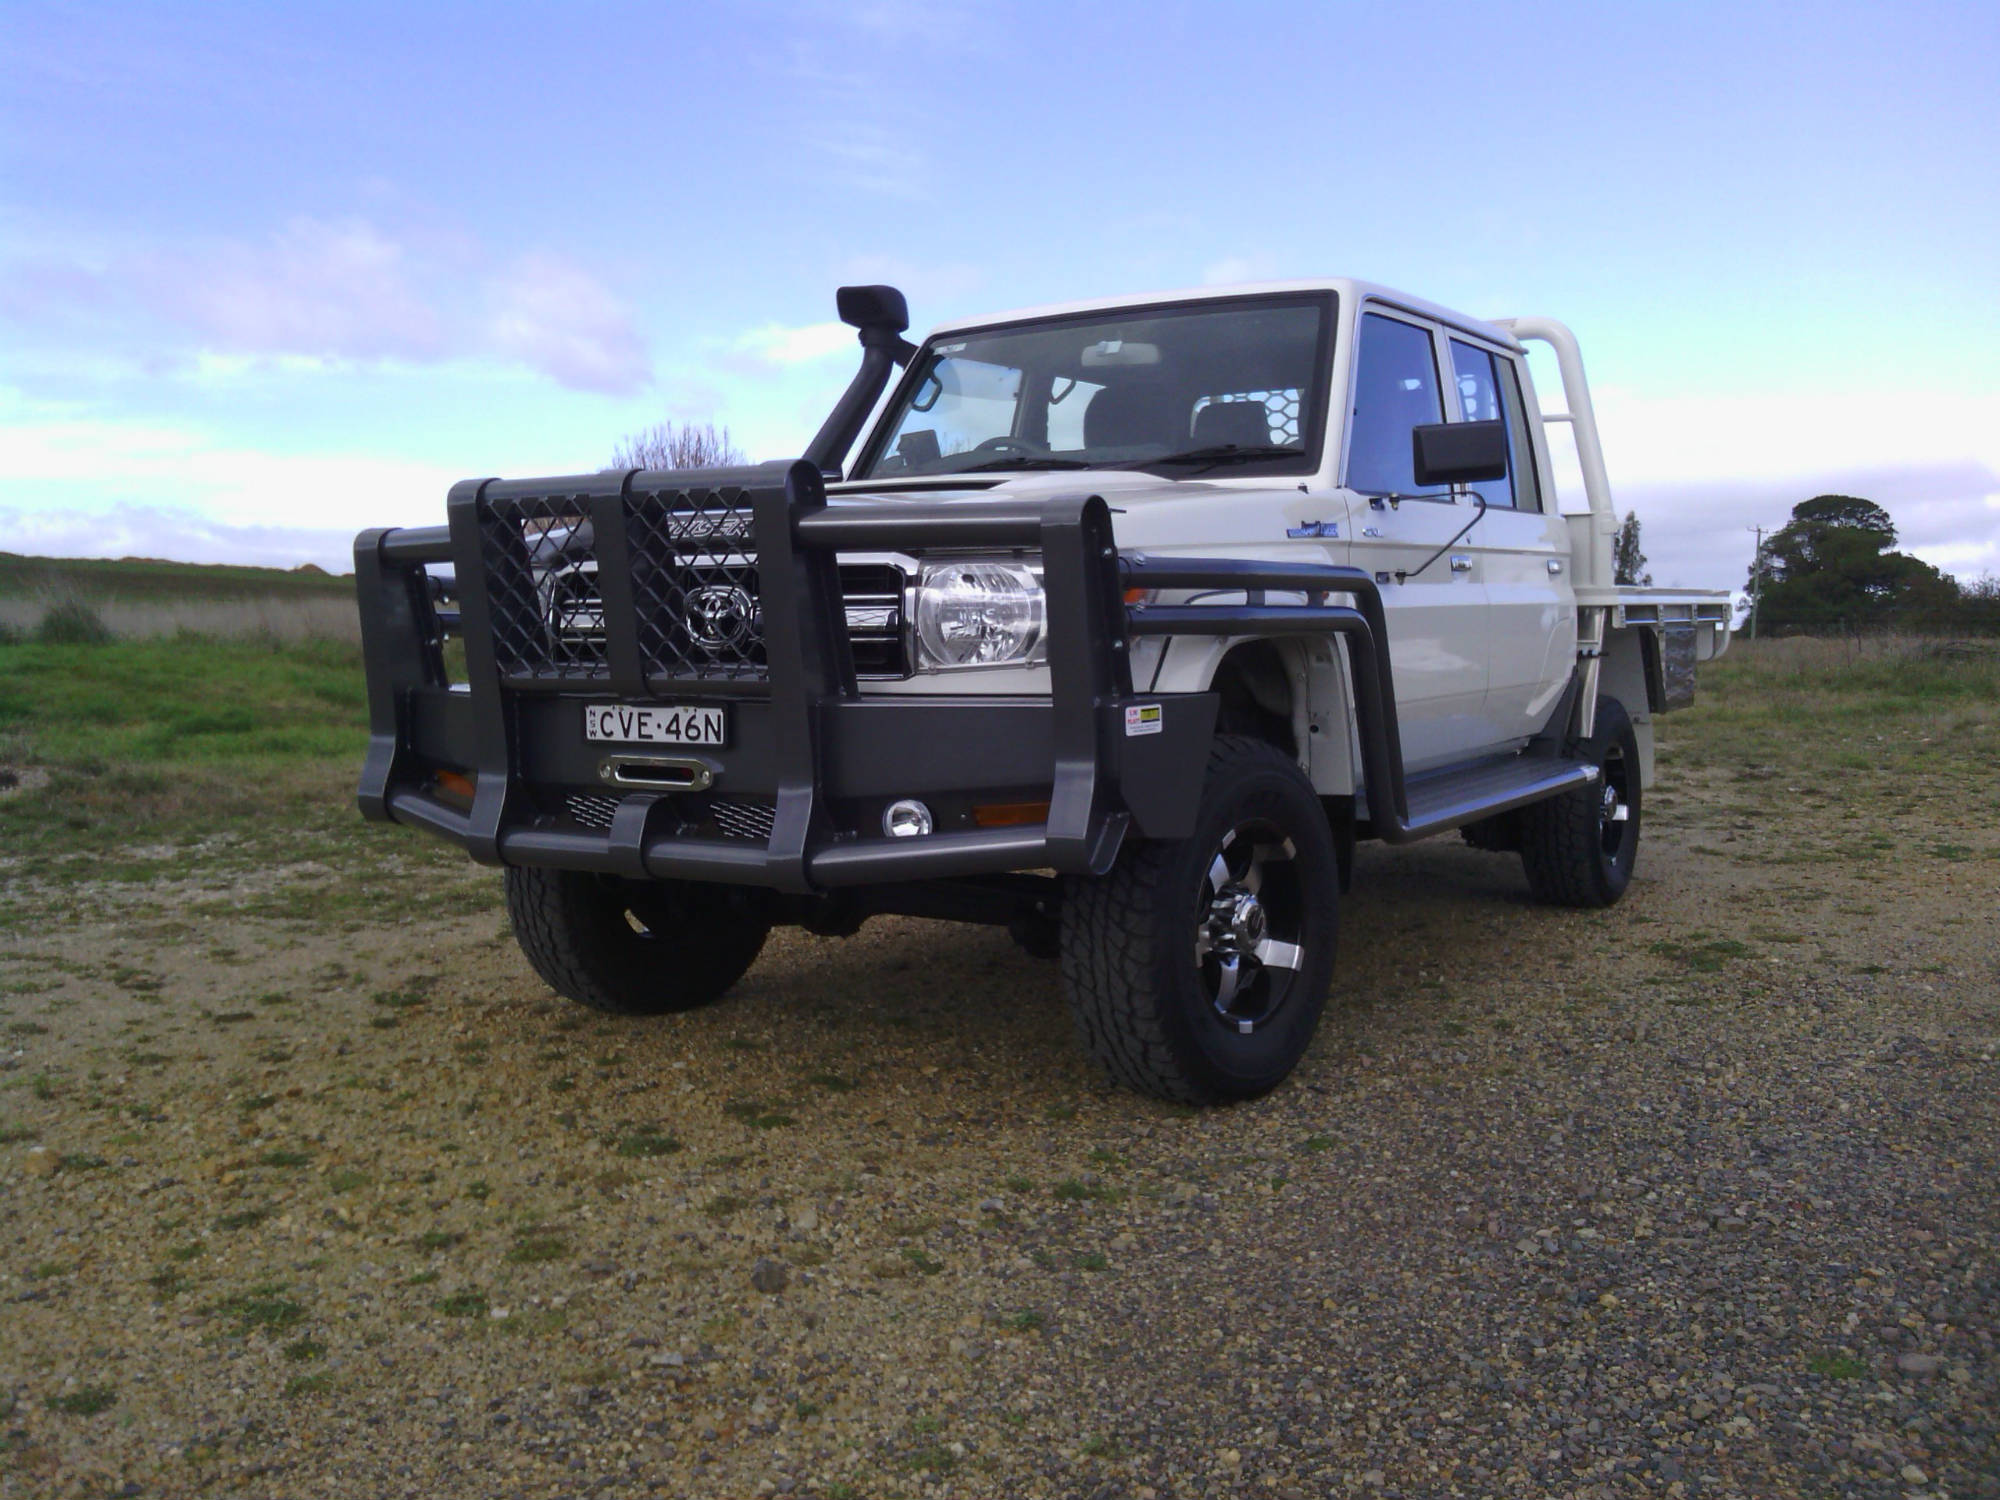 Toyota Of Orange >> 2014 Toyota 79 Series Landcruiser - Standard McCann, 60mm Double Scrubs - Powder-coated Steel ...